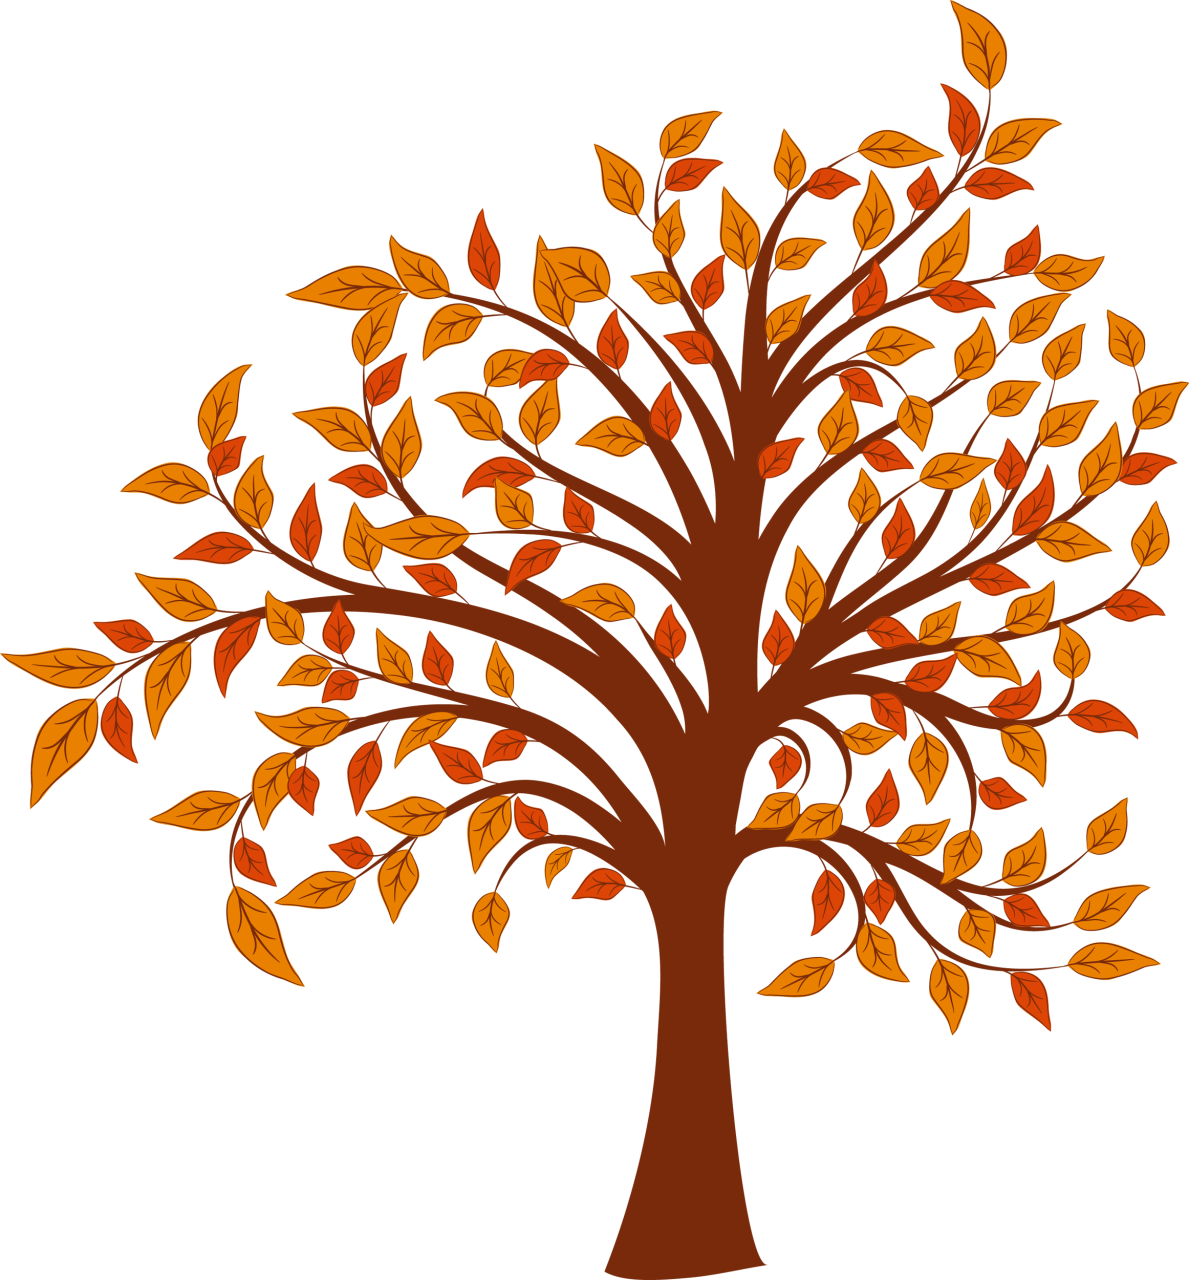 Chalkboard art clipart tree autumn graphic download Autumn tree clipart free - ClipartFest graphic download